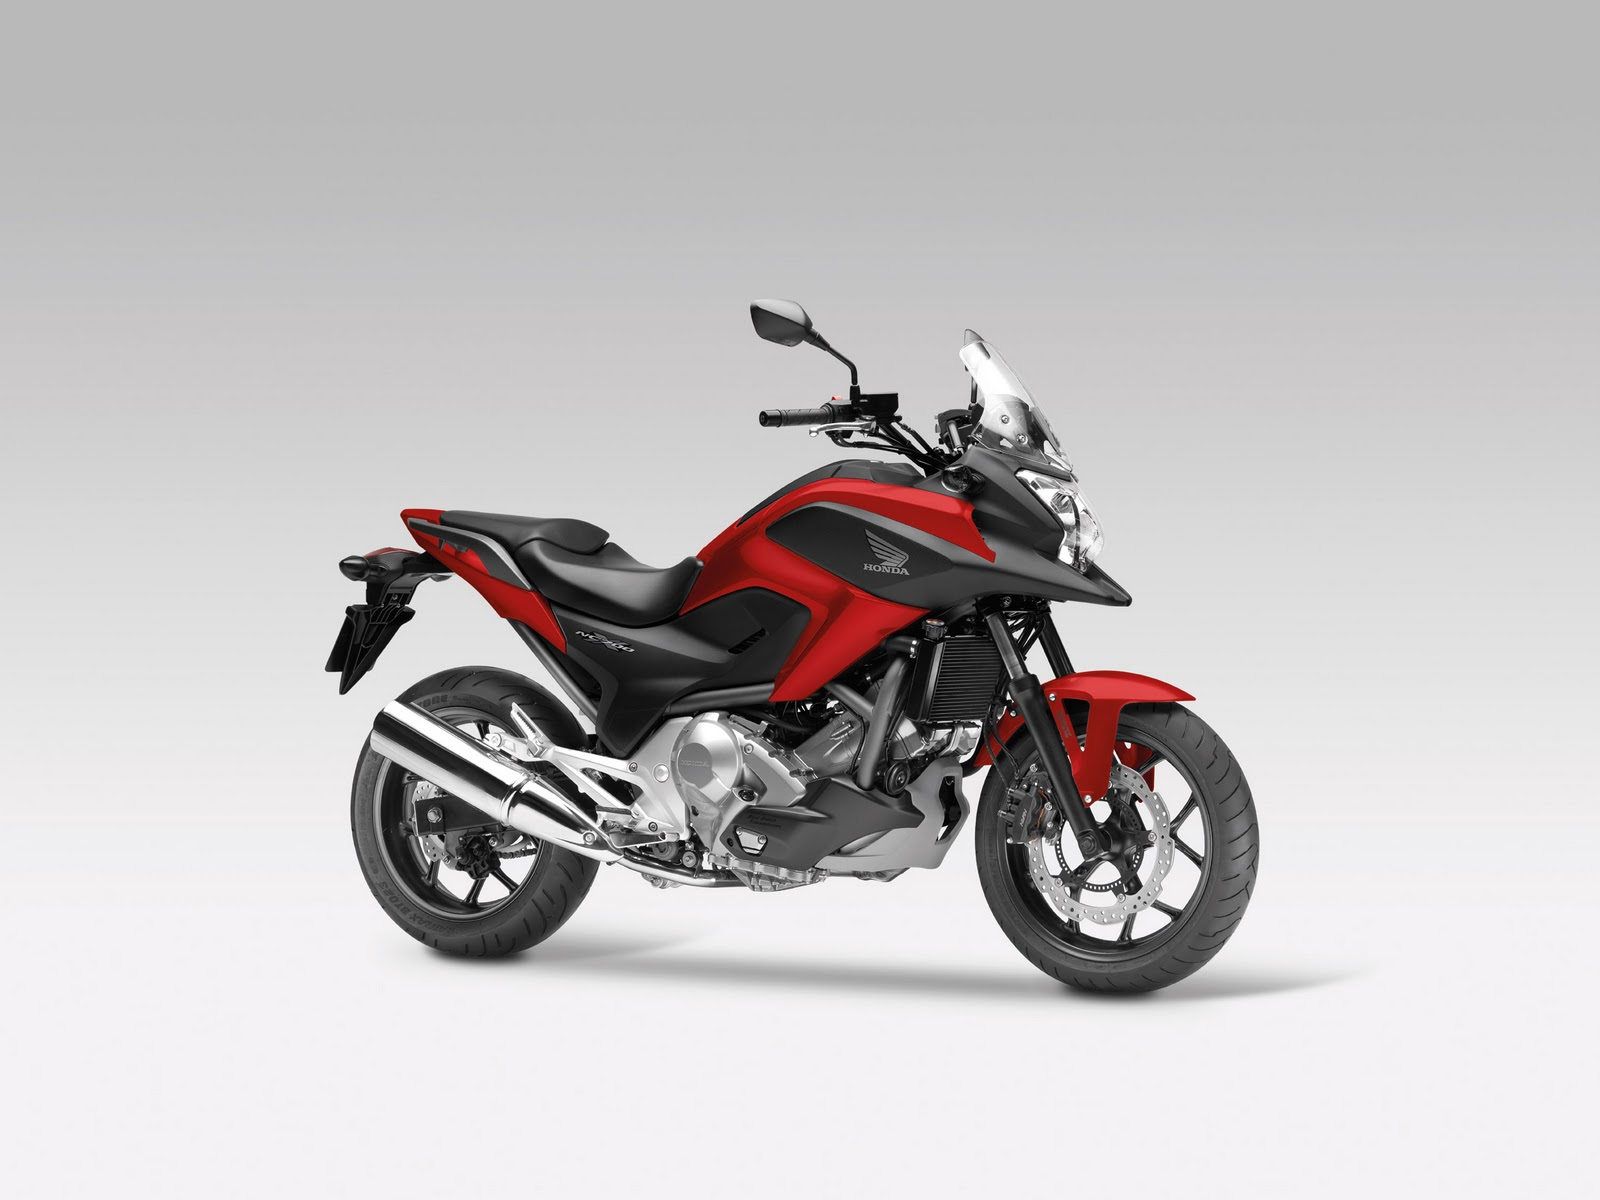 2012 honda nc700x review motorcycles specification. Black Bedroom Furniture Sets. Home Design Ideas